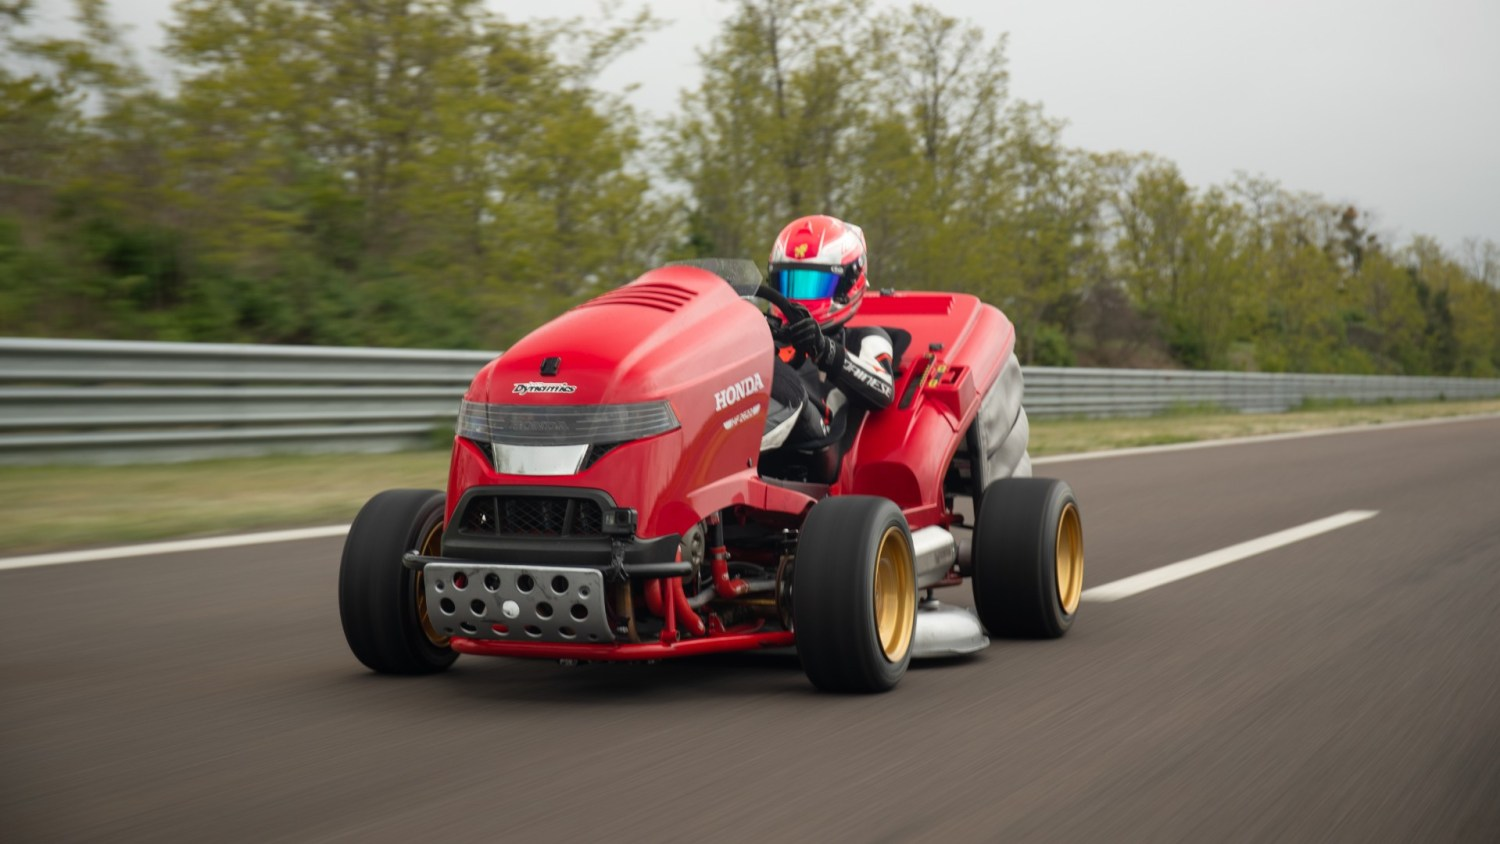 Honda's Mean Mower is the fastest lawnmower in the world